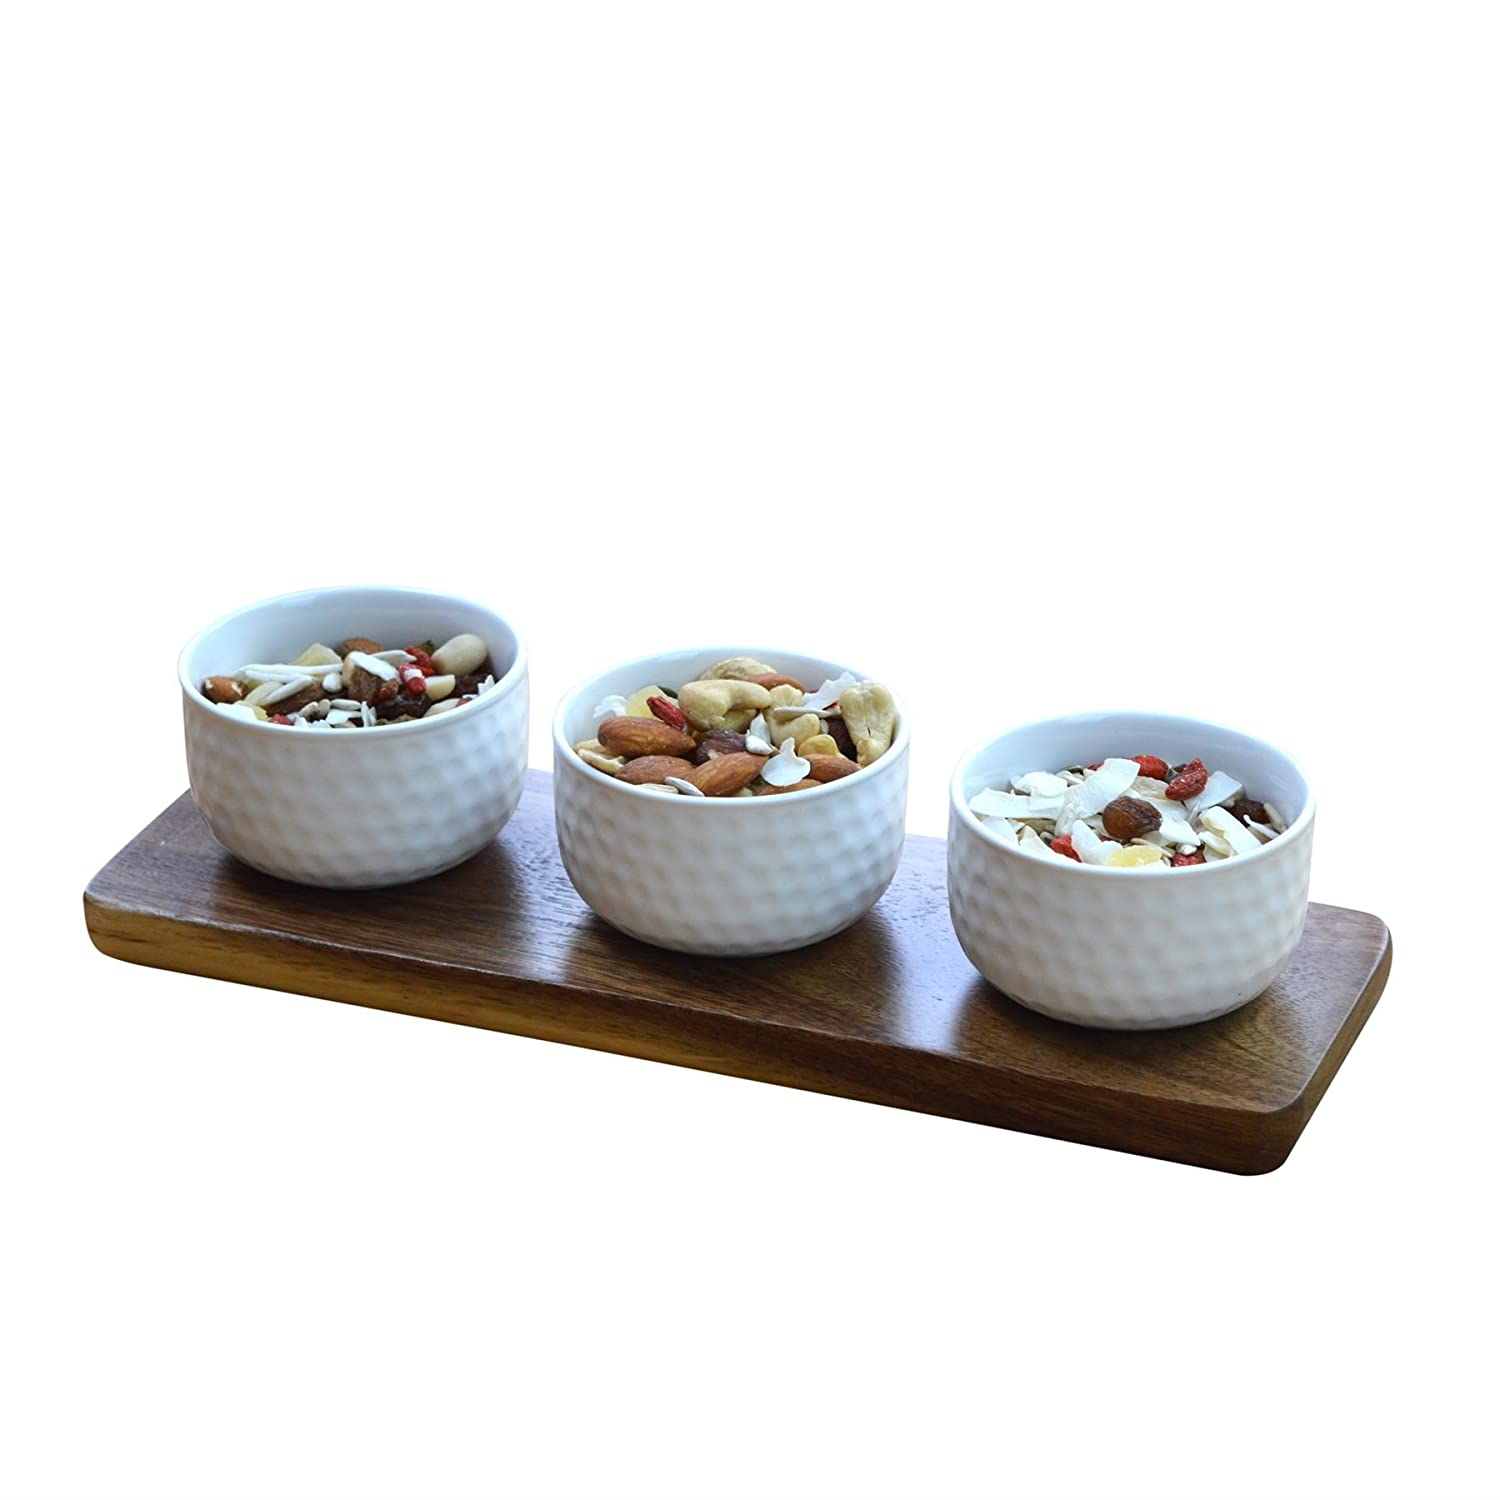 Argon Tableware Set Of 3 Dipping Snack/Tapas Serving Bowls On Wooden Serving Board - Dimple Design